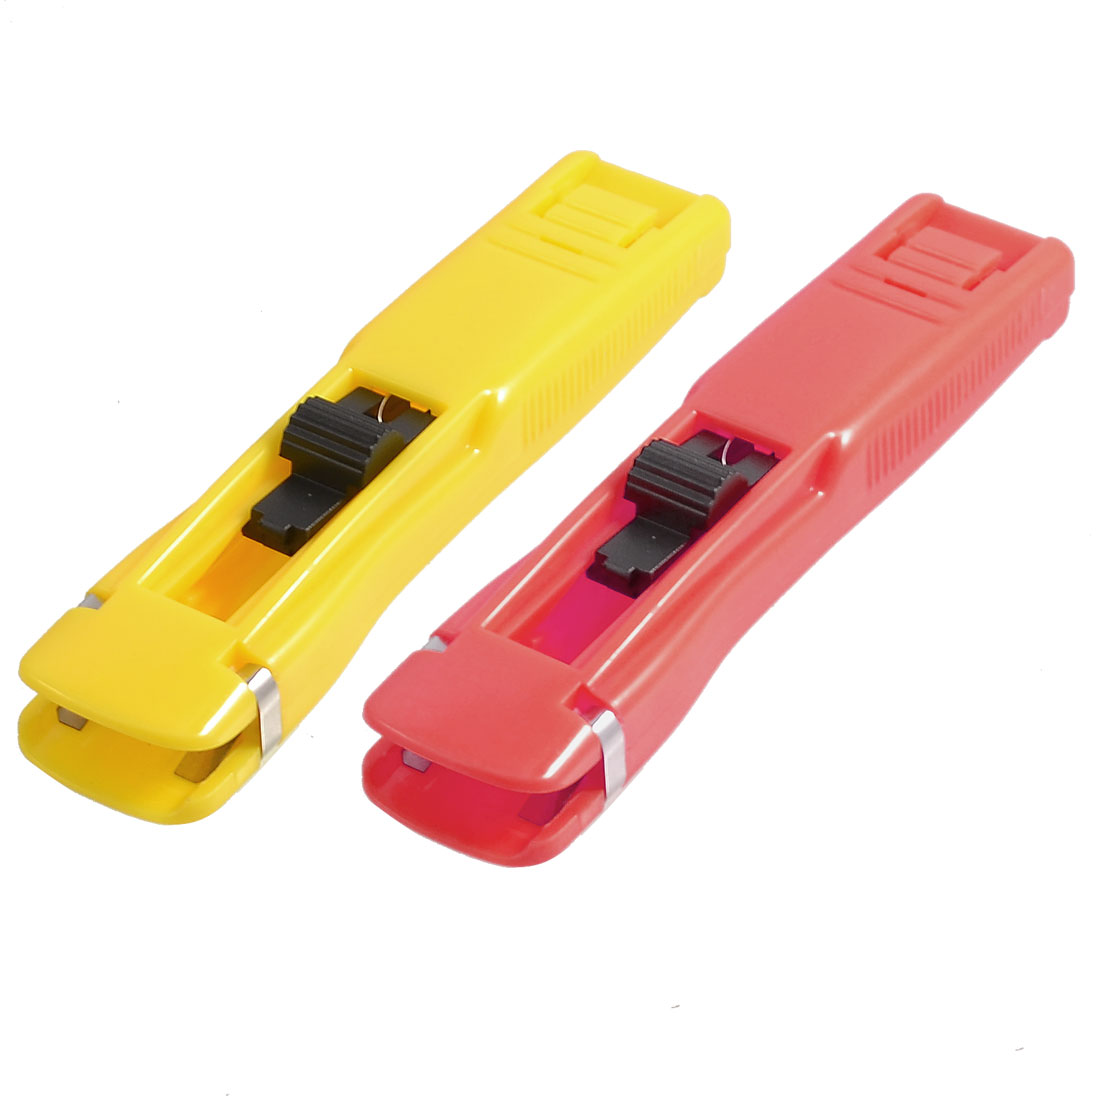 2 Pcs Yellow Red Plastic Zip Gun Tool Clip Dispenser for Quilting Sewing